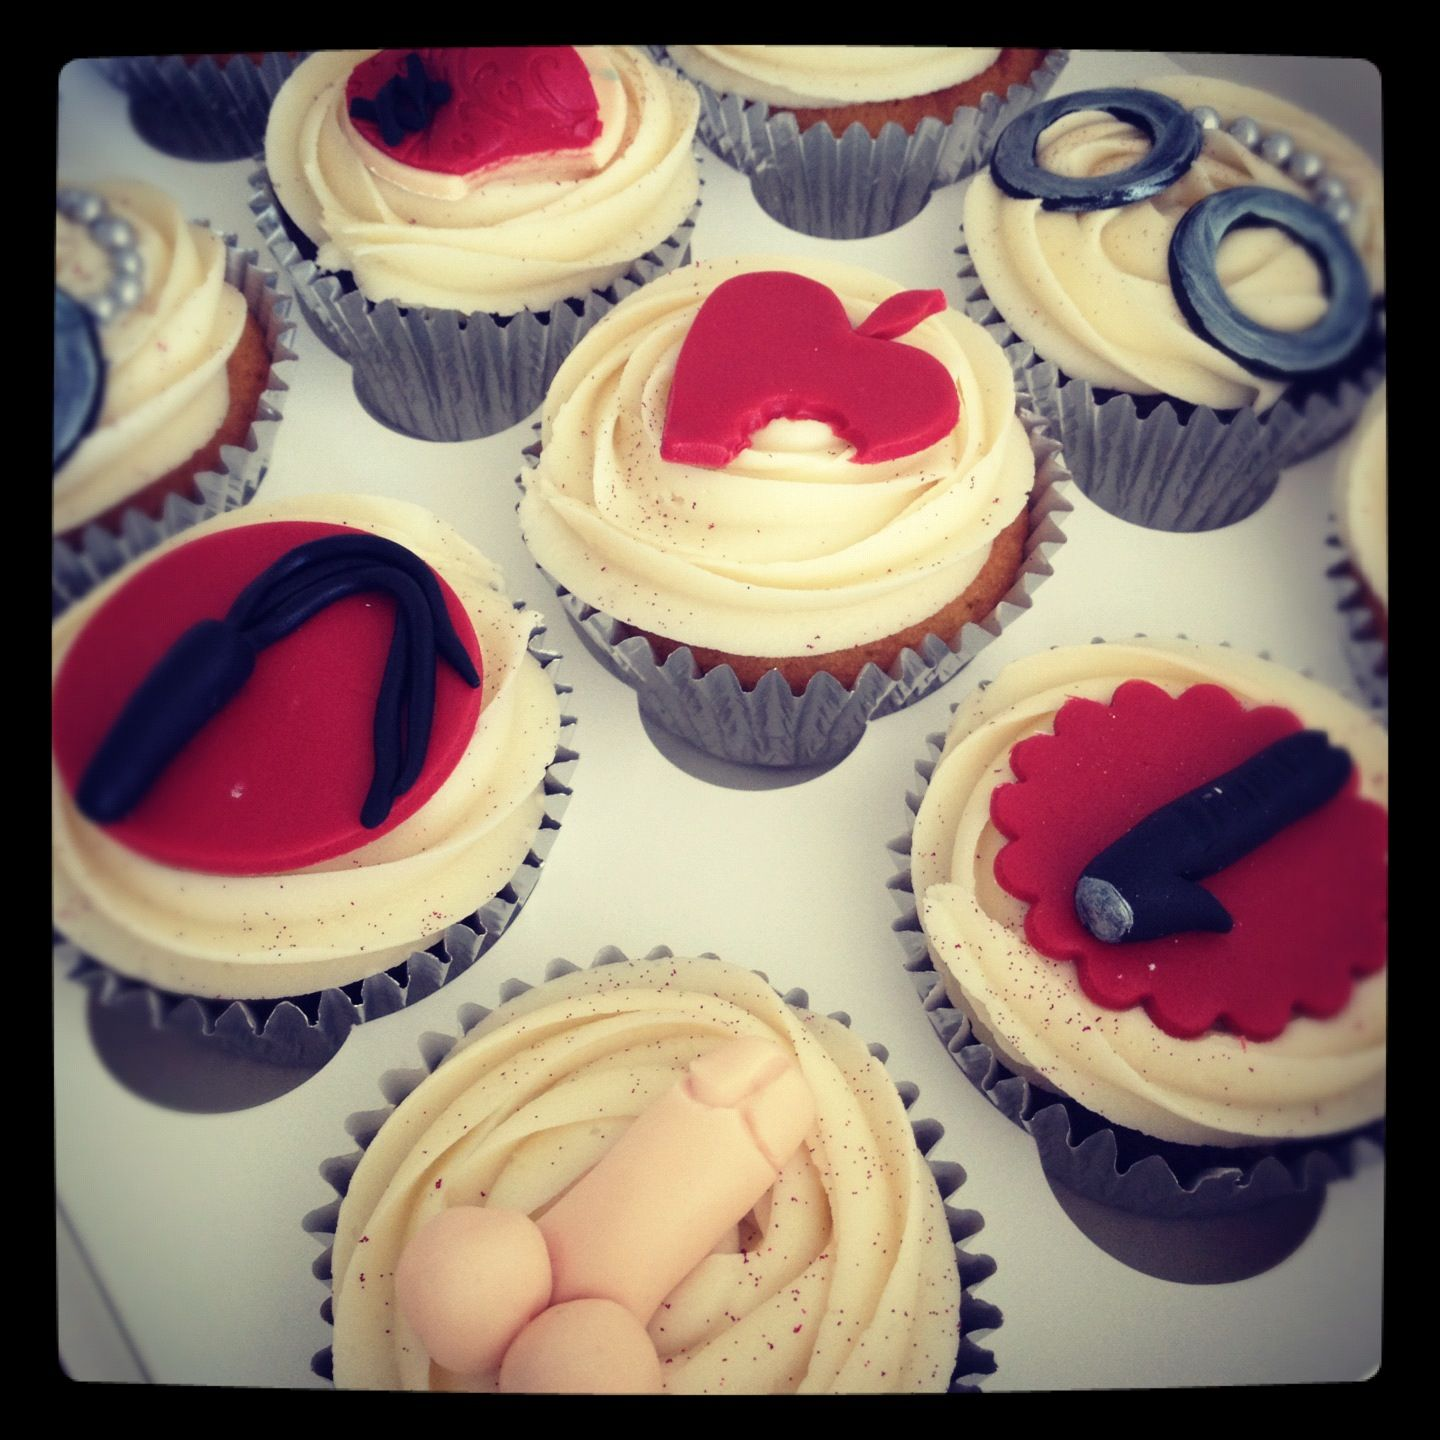 Ann Summers cupcakes by www.candyscupcakes.co.uk   Candys Cupcakes ...